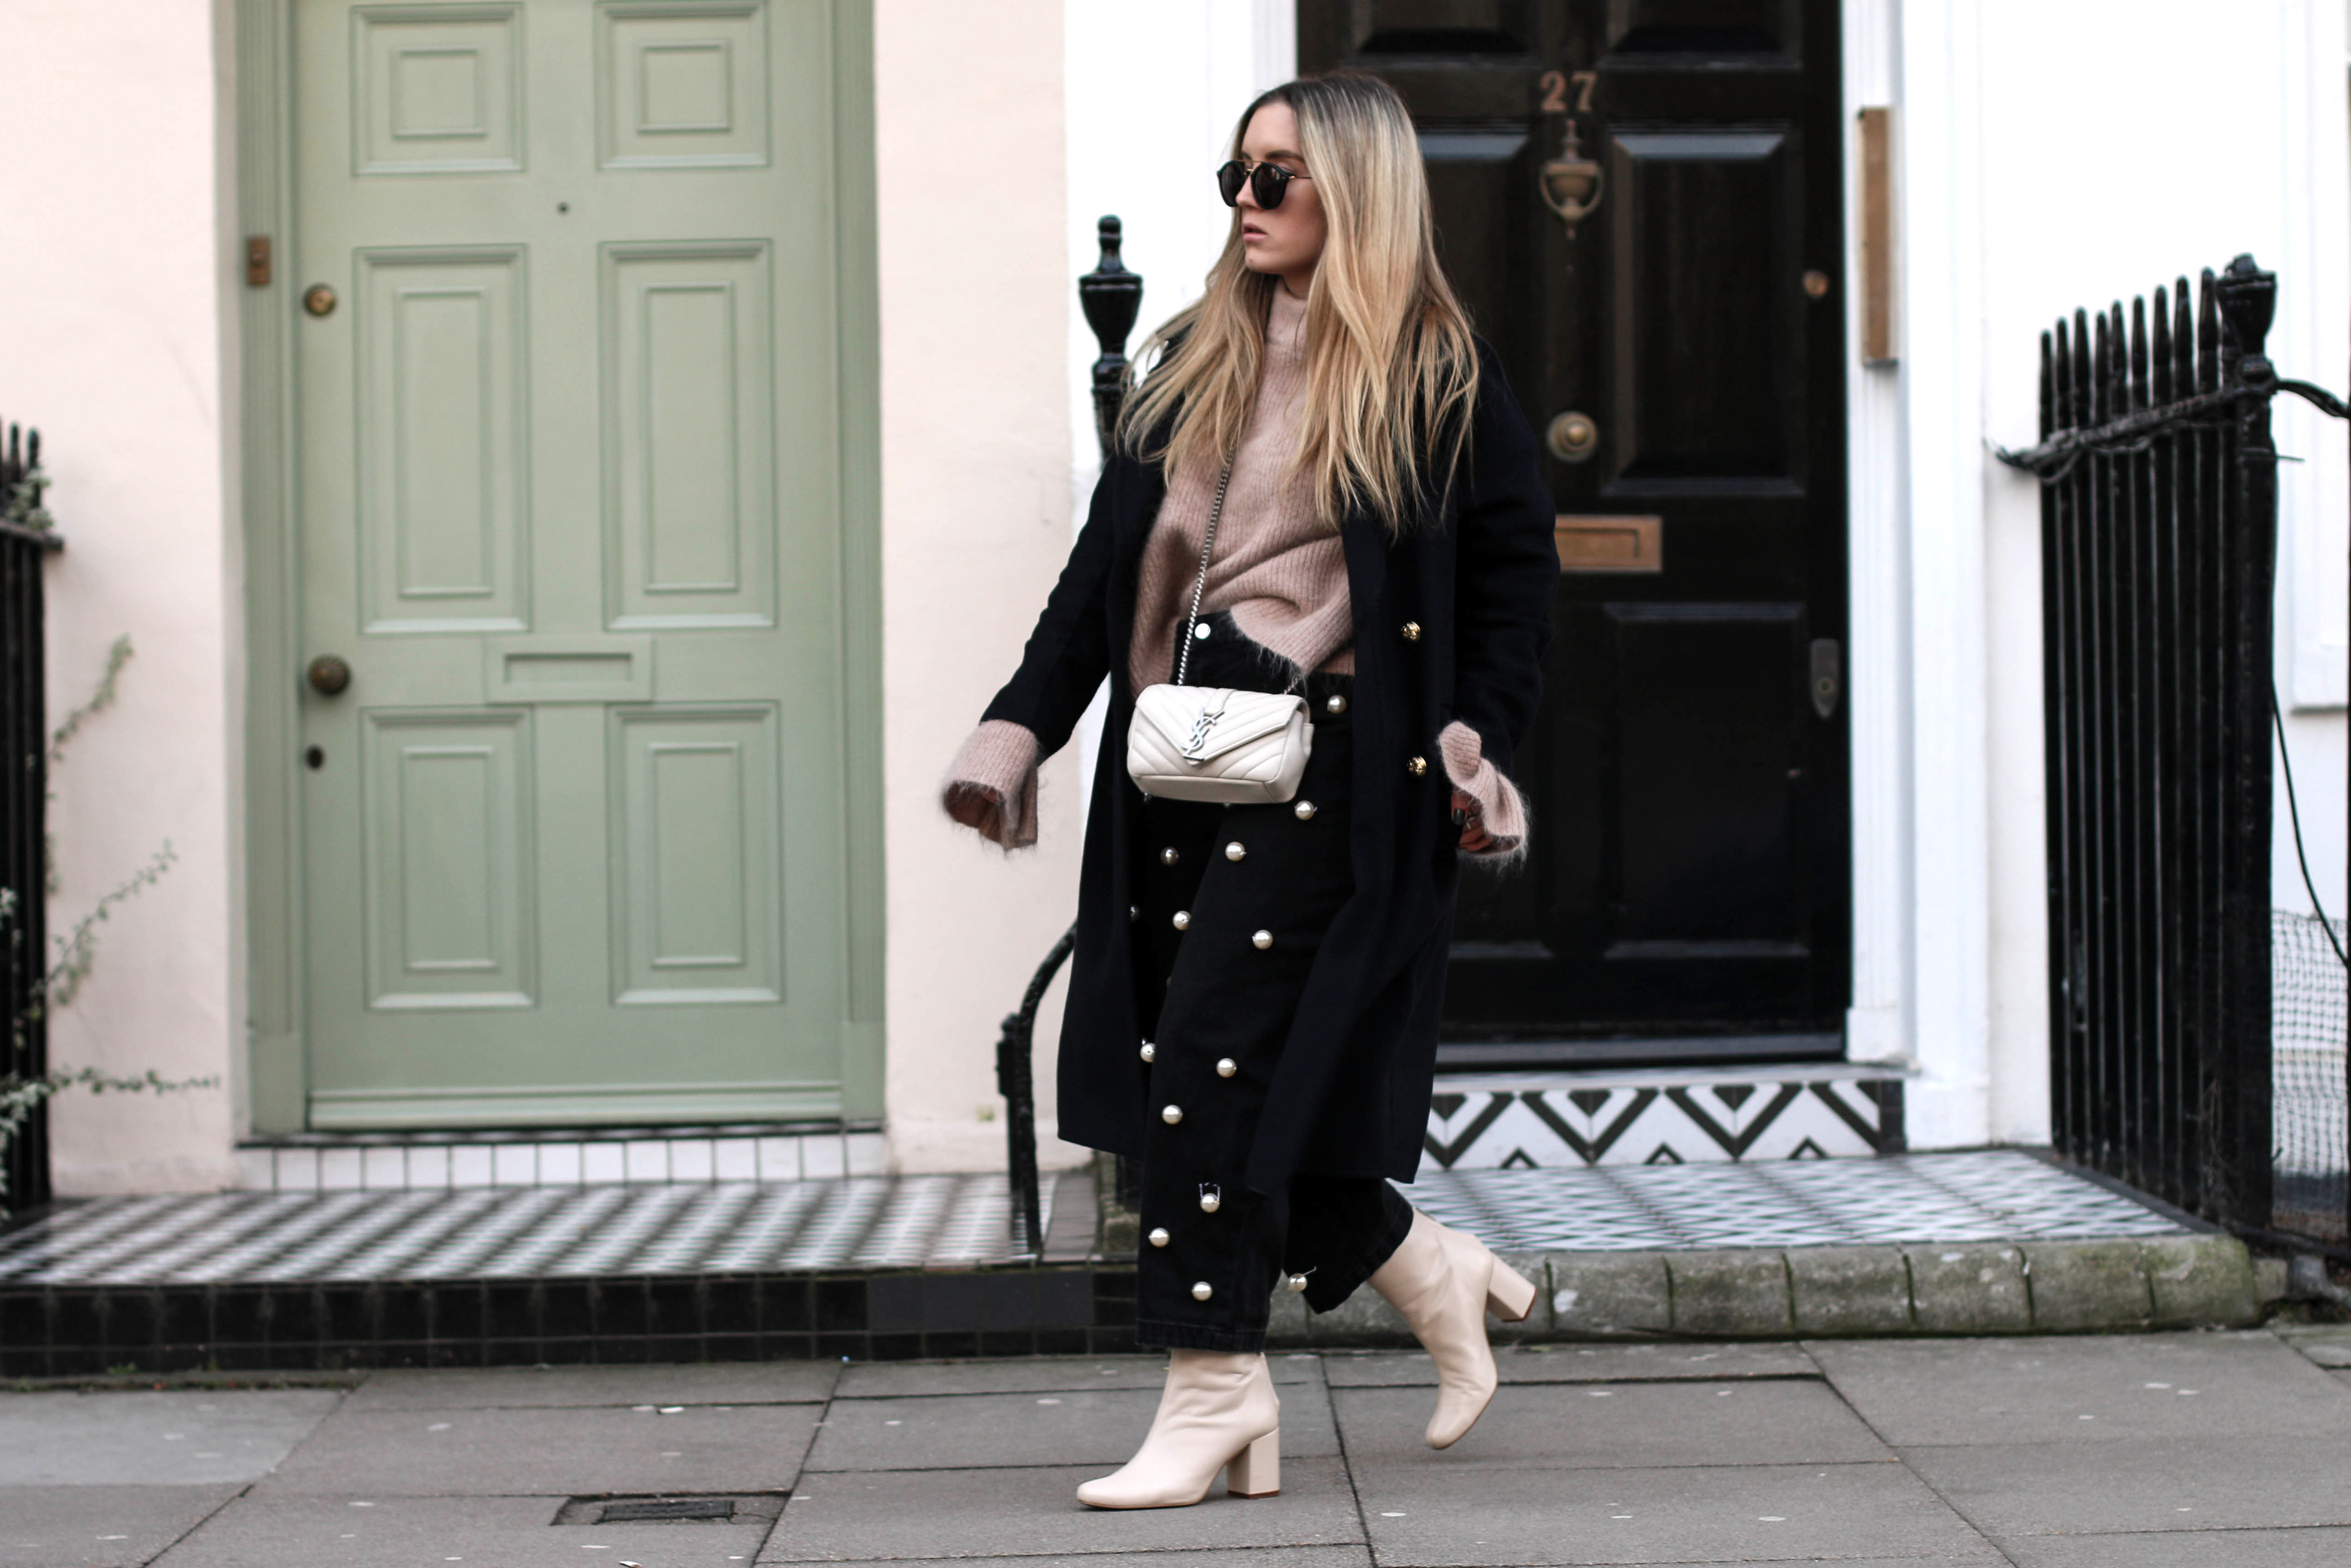 Pearl Embellished pants London Streetstyle